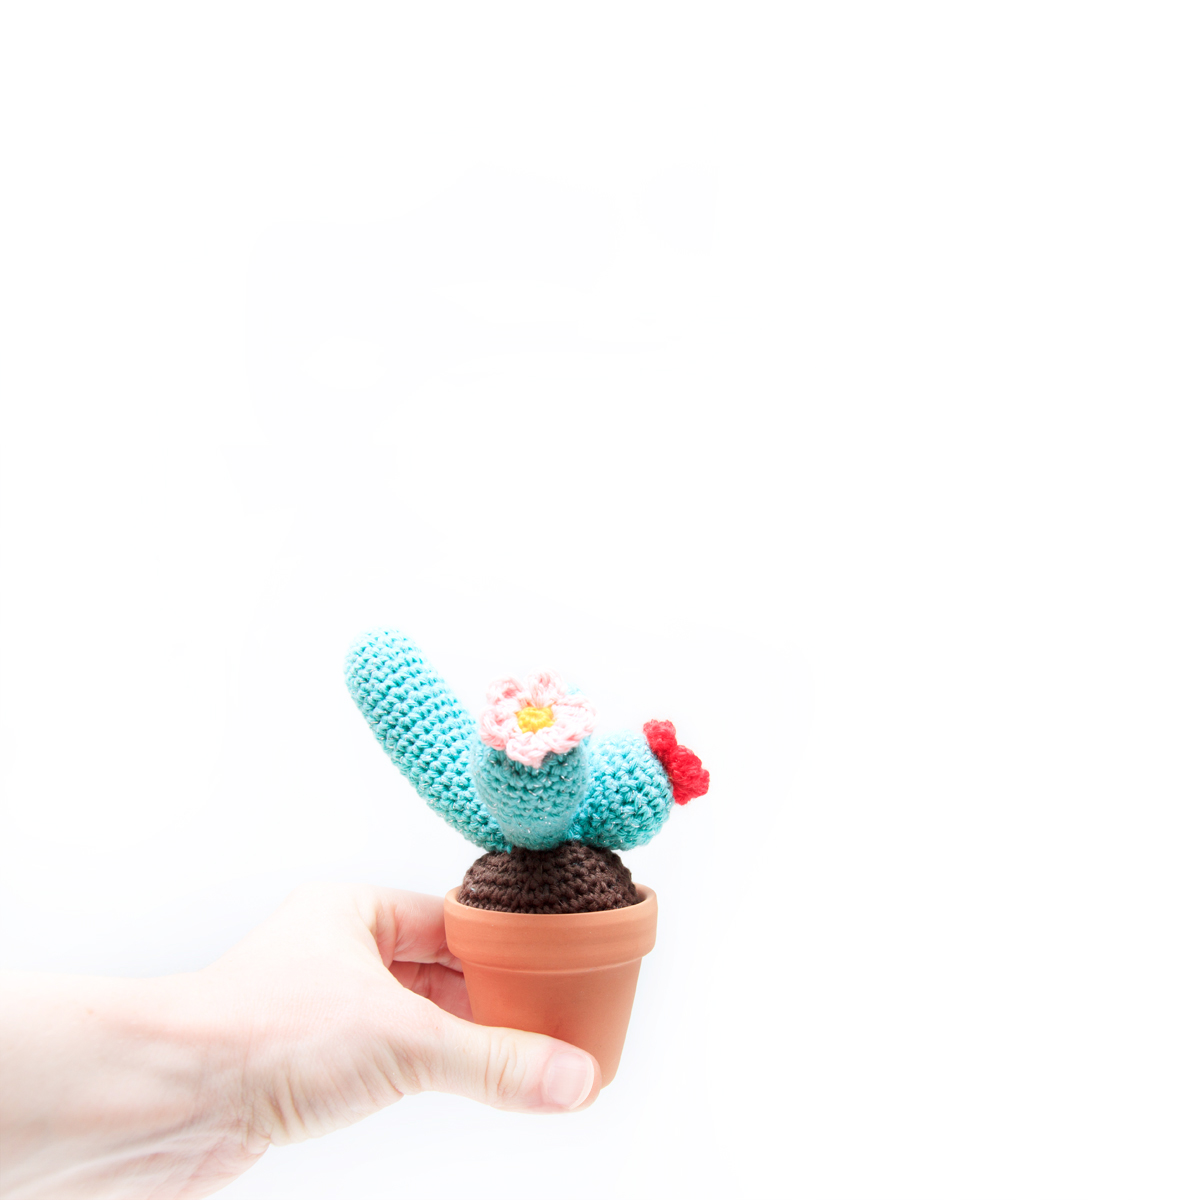 Free Crochet Cactus by Ina Rho